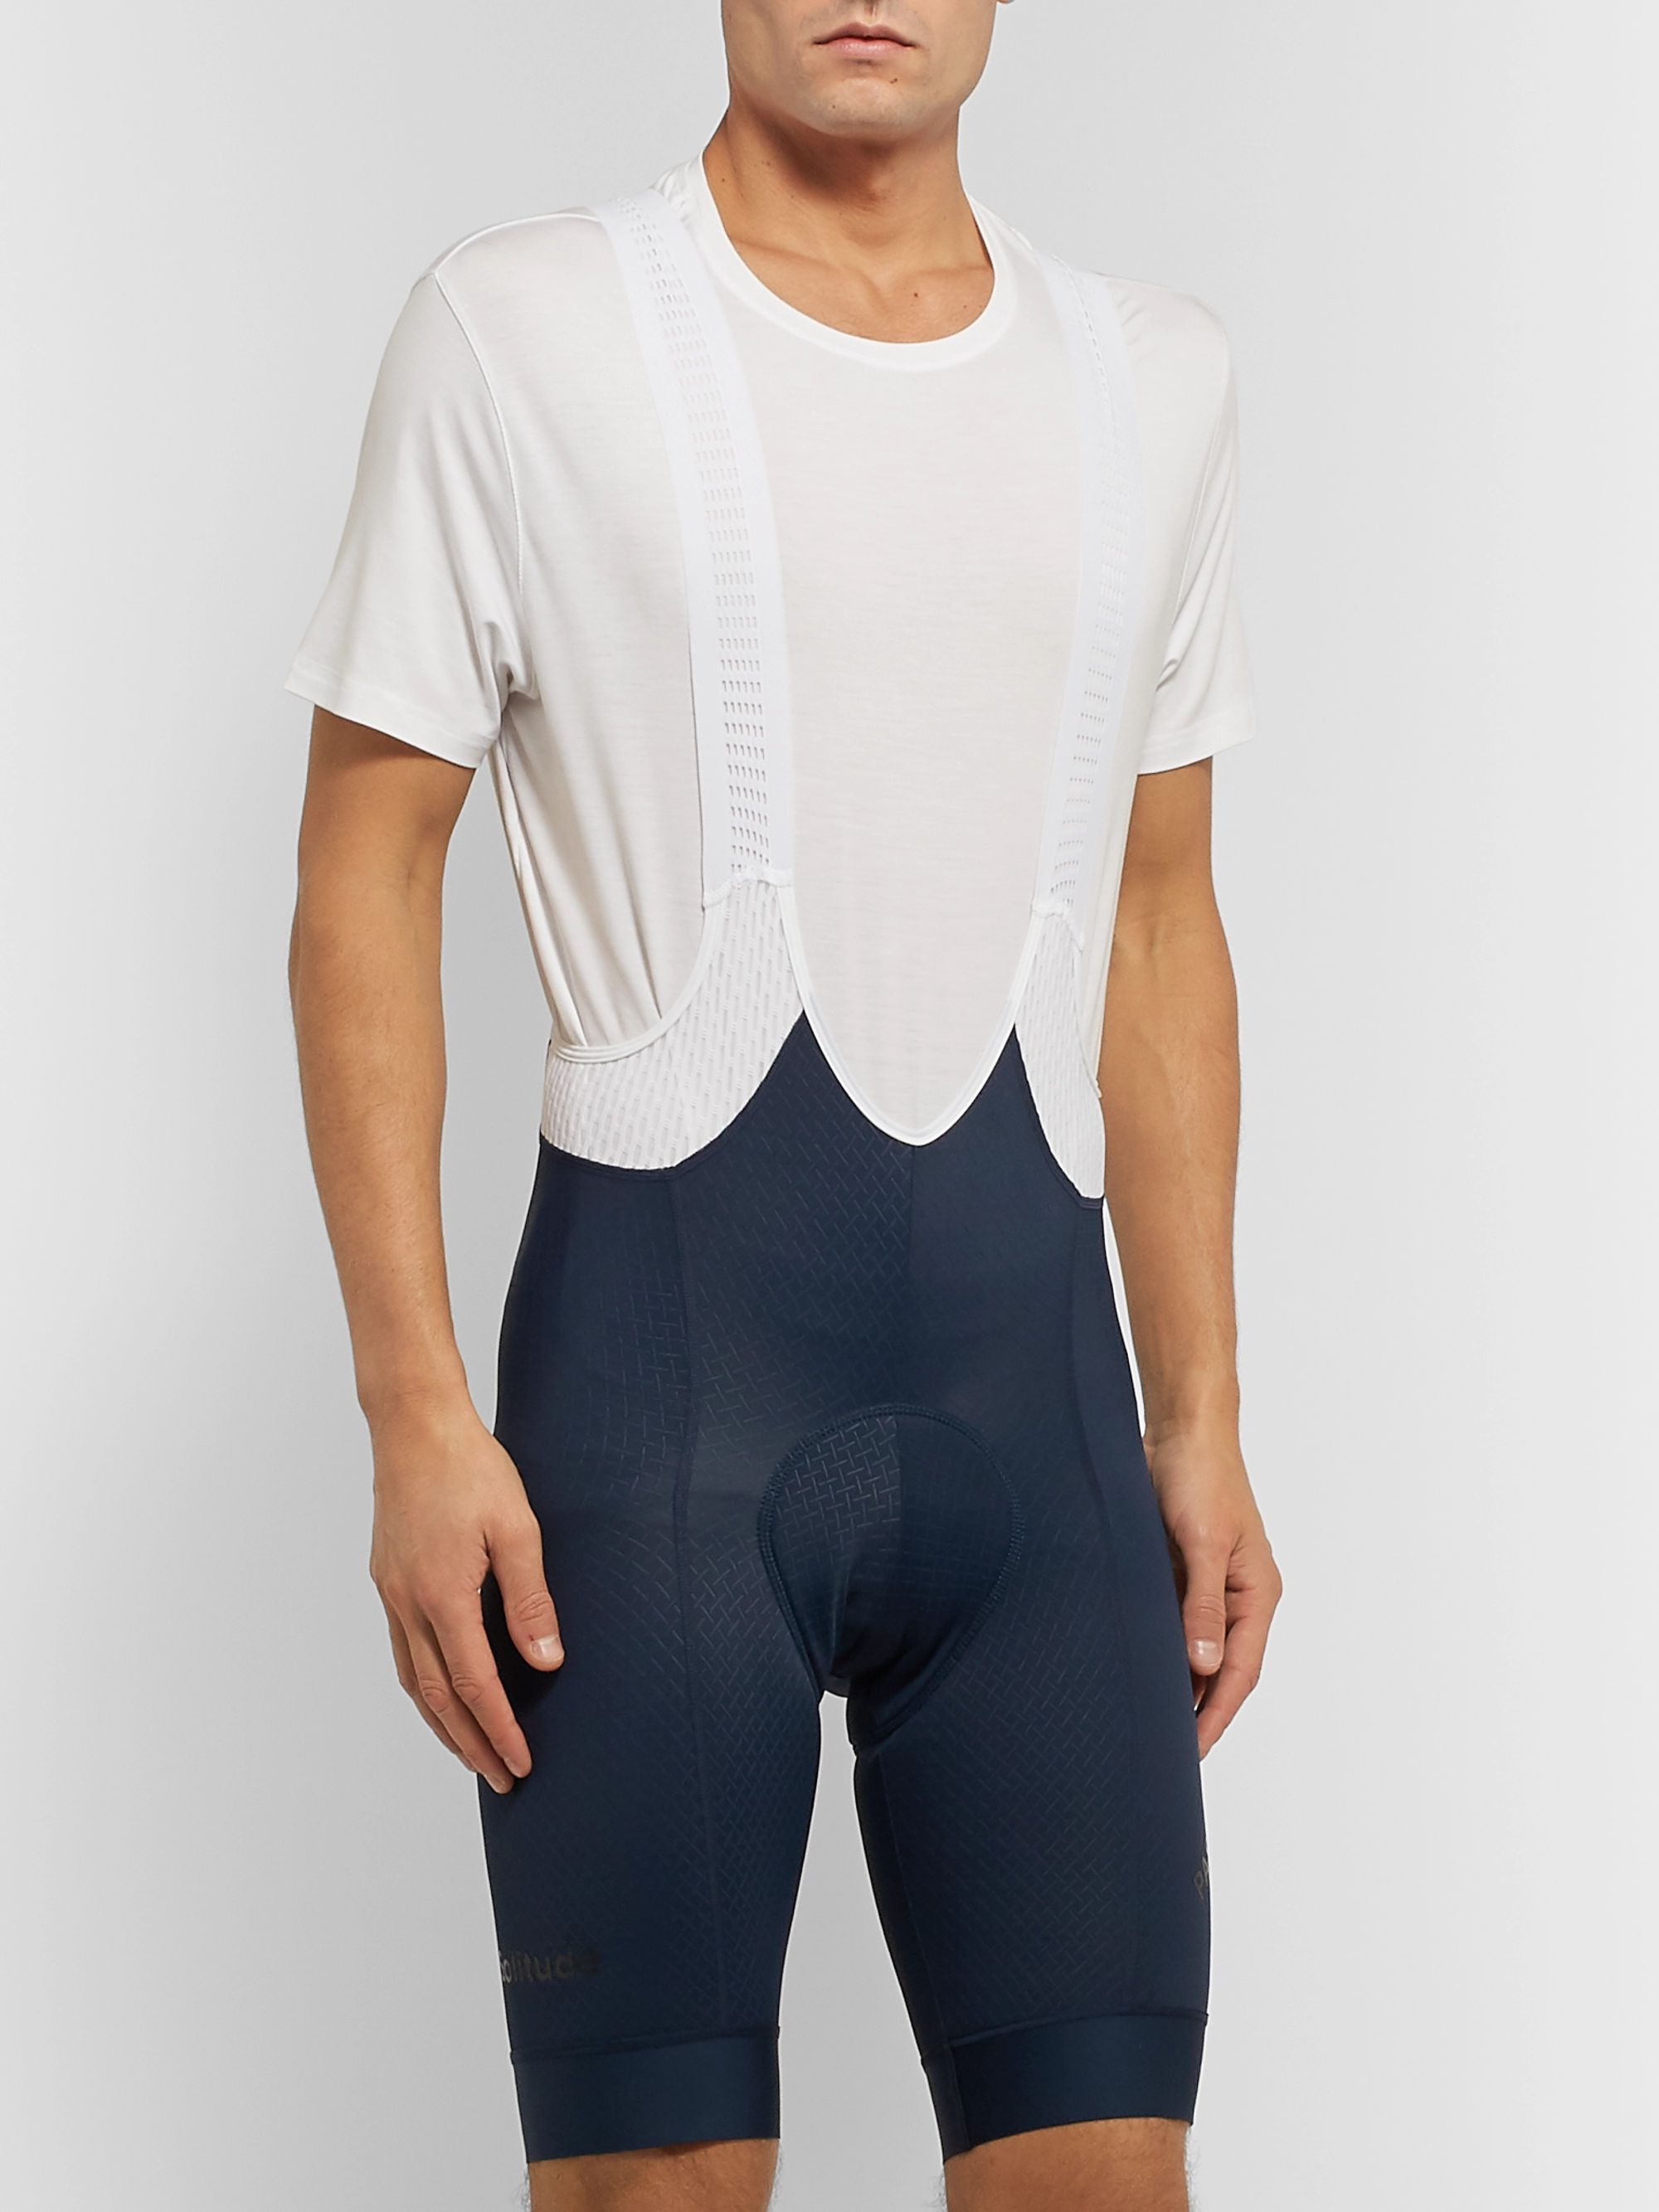 Pas Normal Studios Solitude Cycling Bib Shorts